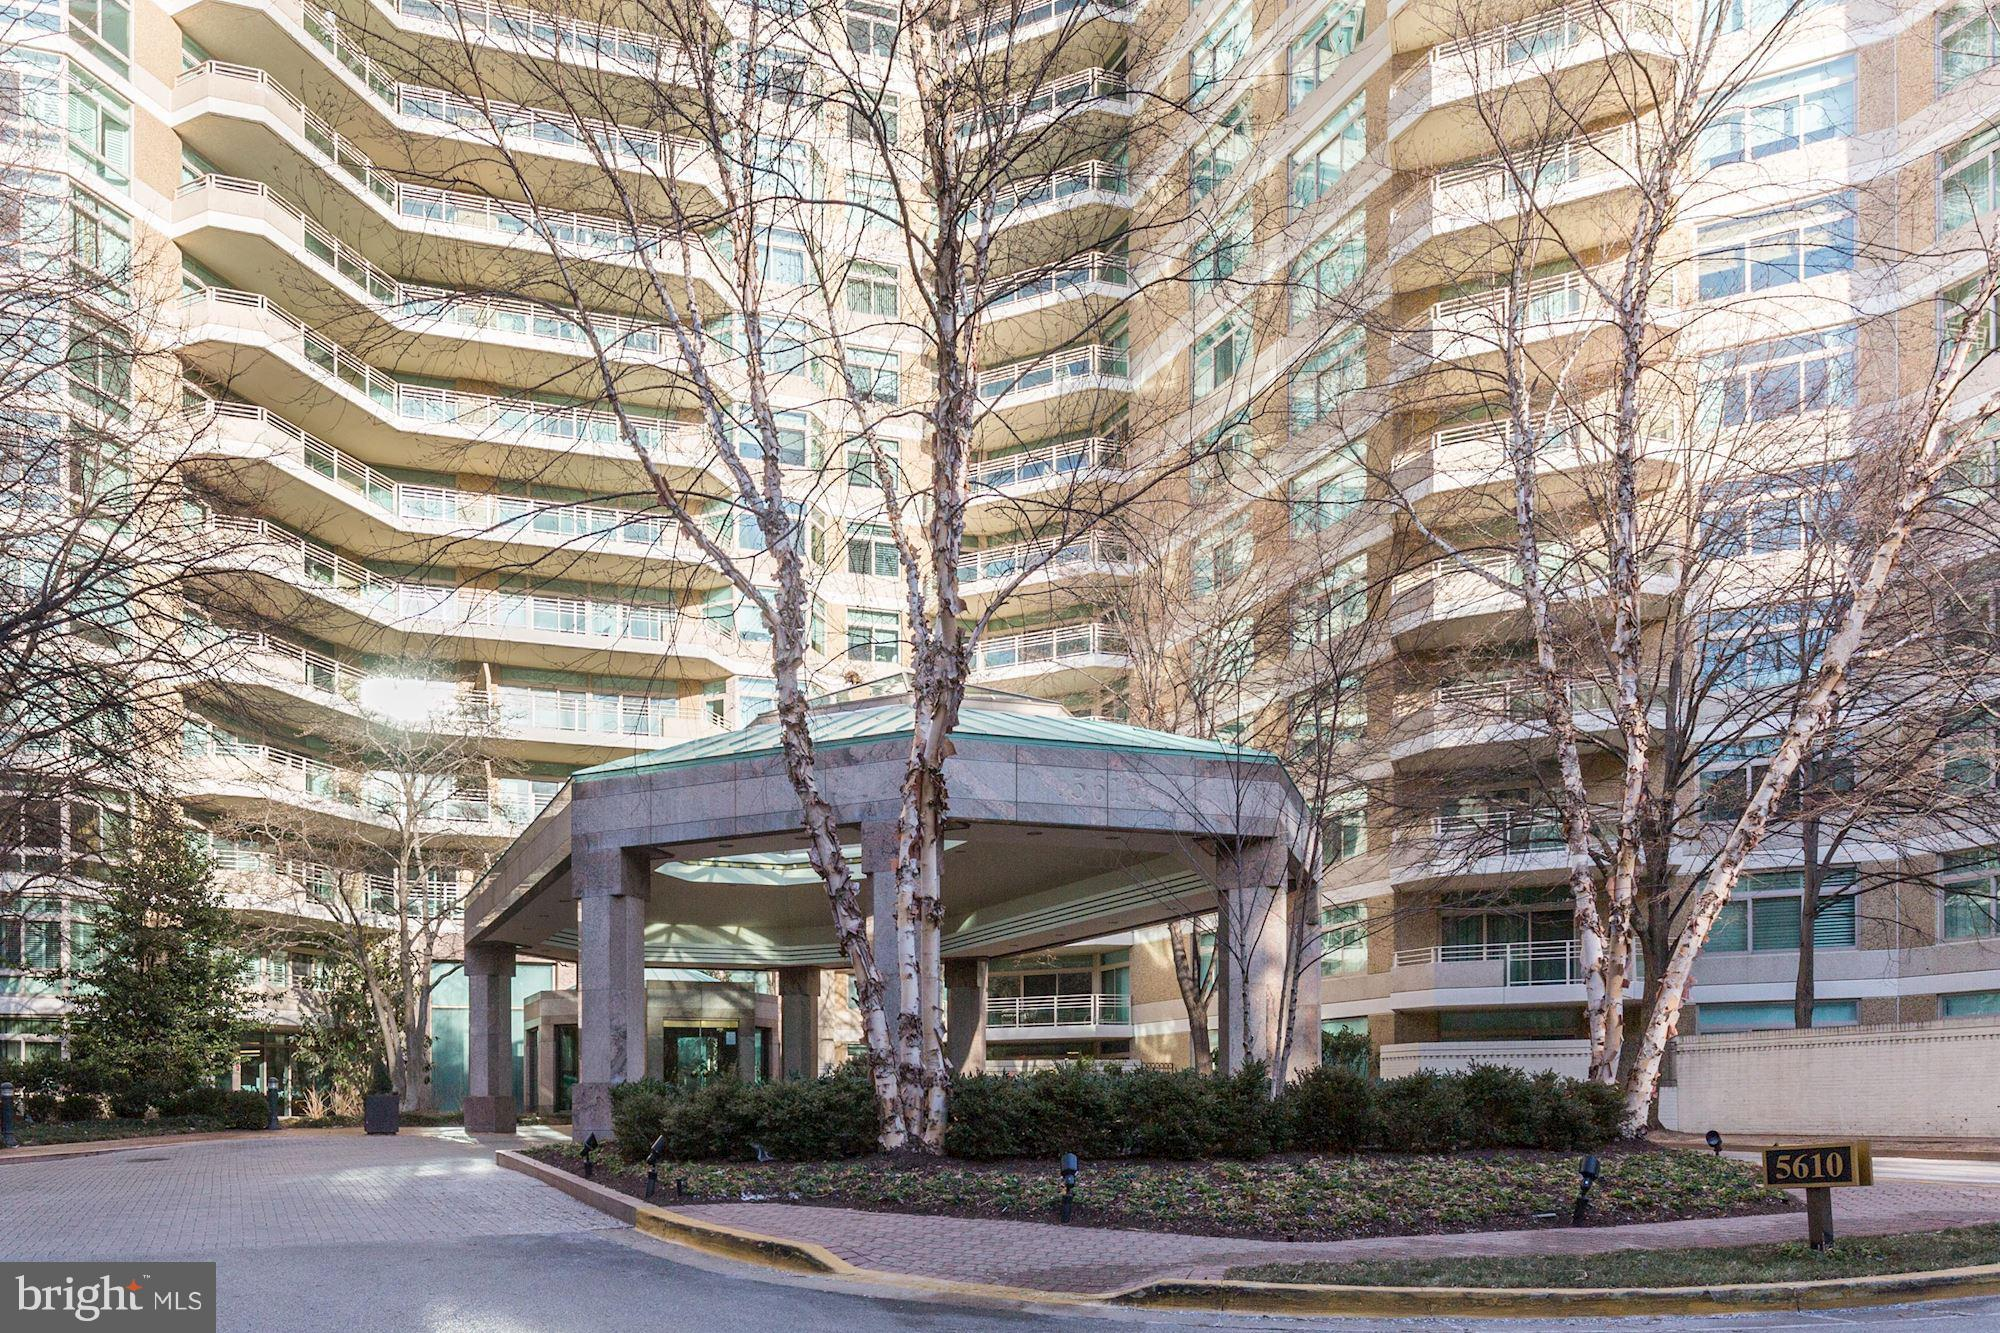 5610 WISCONSIN AVENUE 1203, CHEVY CHASE, MD 20815